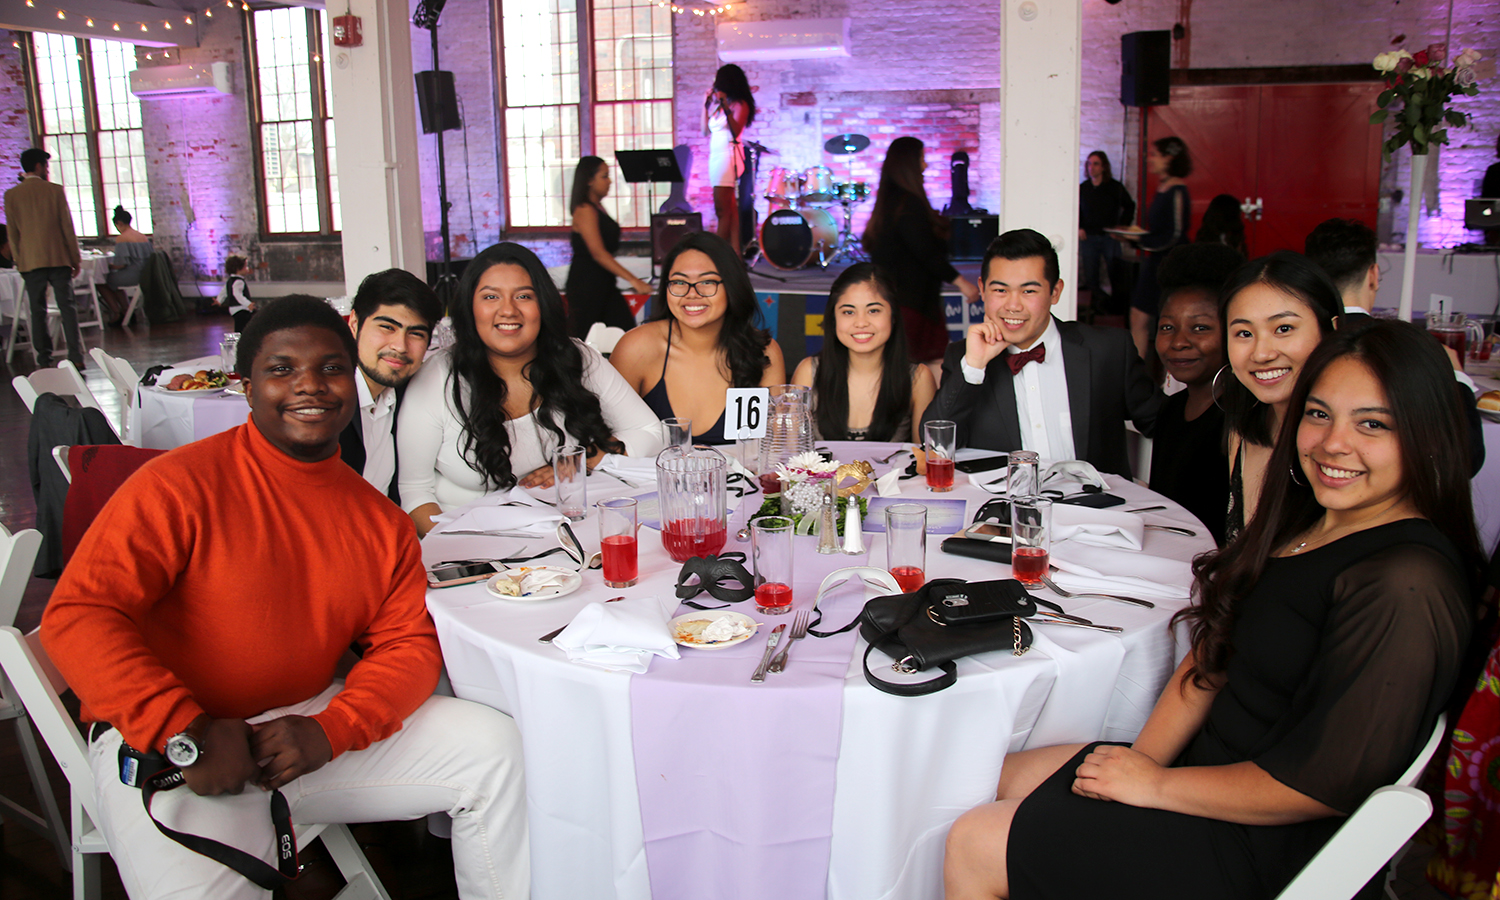 Students gather for a photo during the Caribbean Student Association's annual Masquerade Ball at the Cracker Factory.